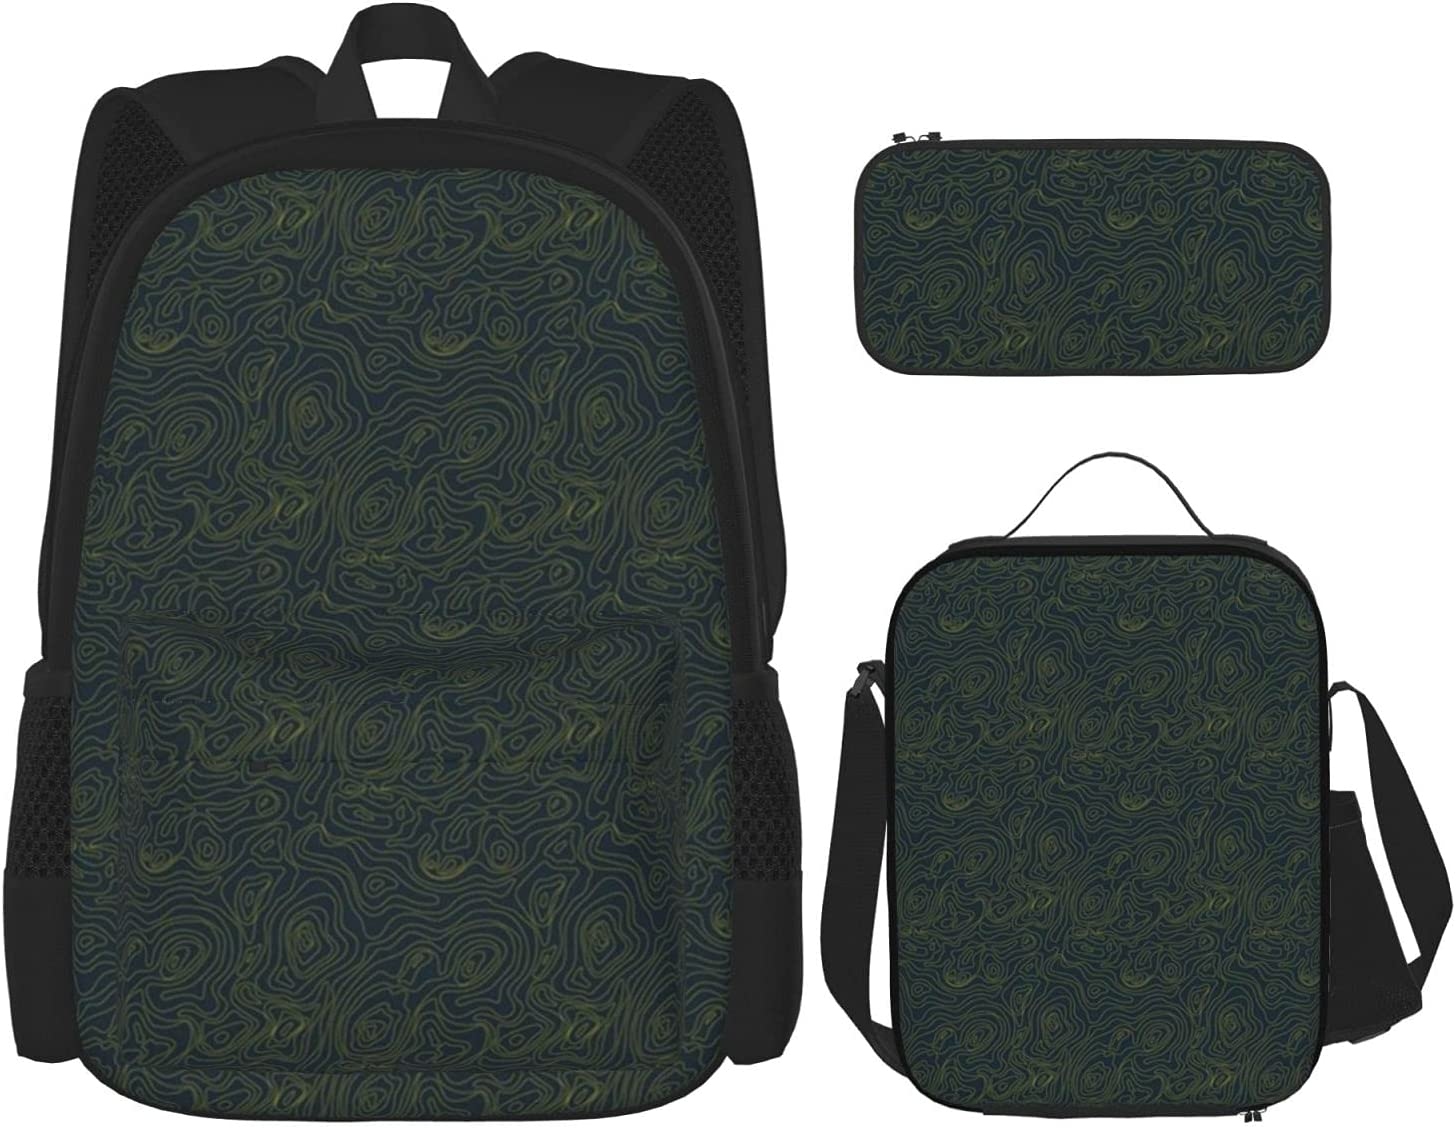 Backpack Bags Topography Black Bag Lunch Po Pencil with Max 76% OFF Case Be super welcome